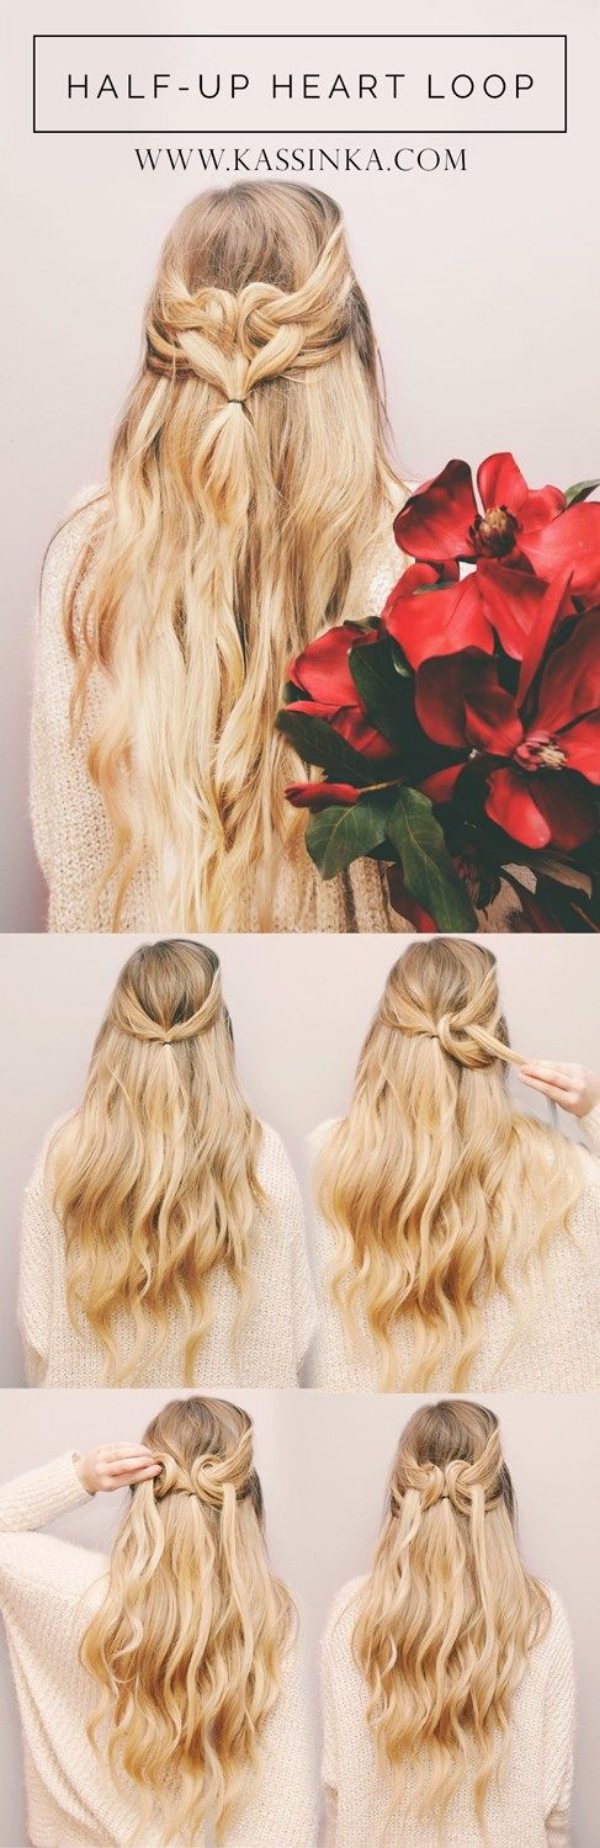 Simple Five Minute Hairstyles00003